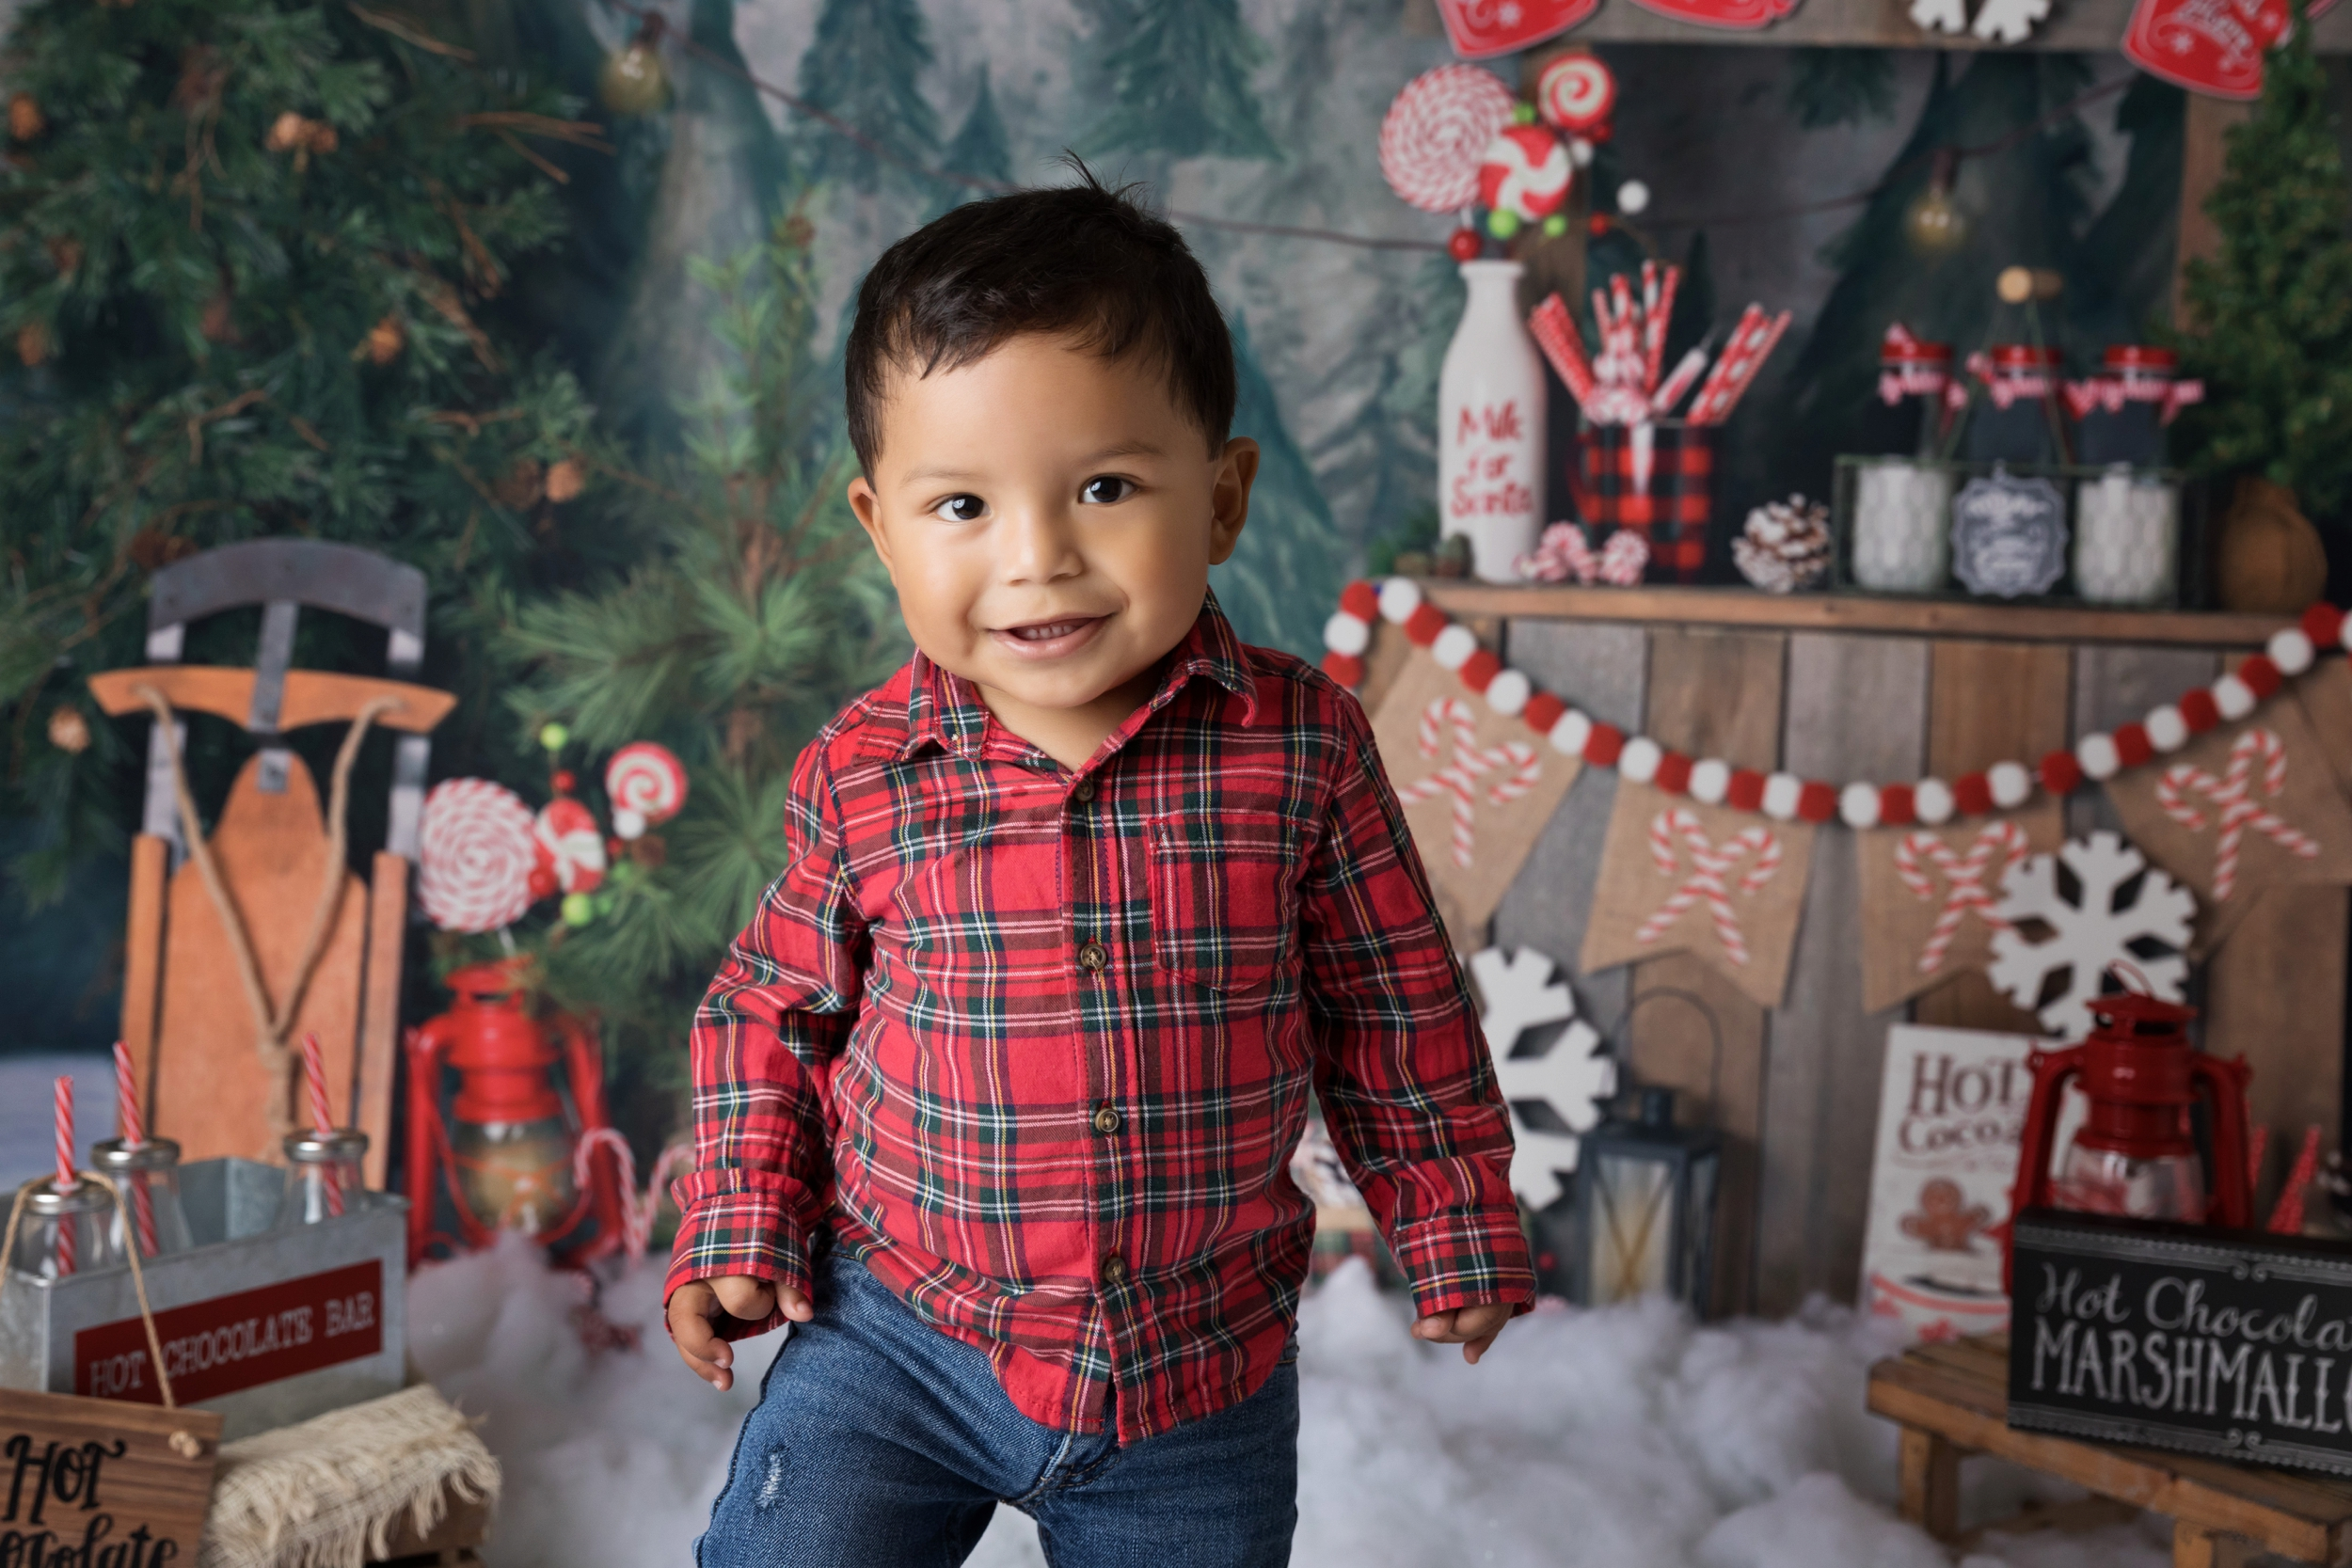 Christmas-Mini-Sessions-Jessica-Doffing-Photography_0017.jpg